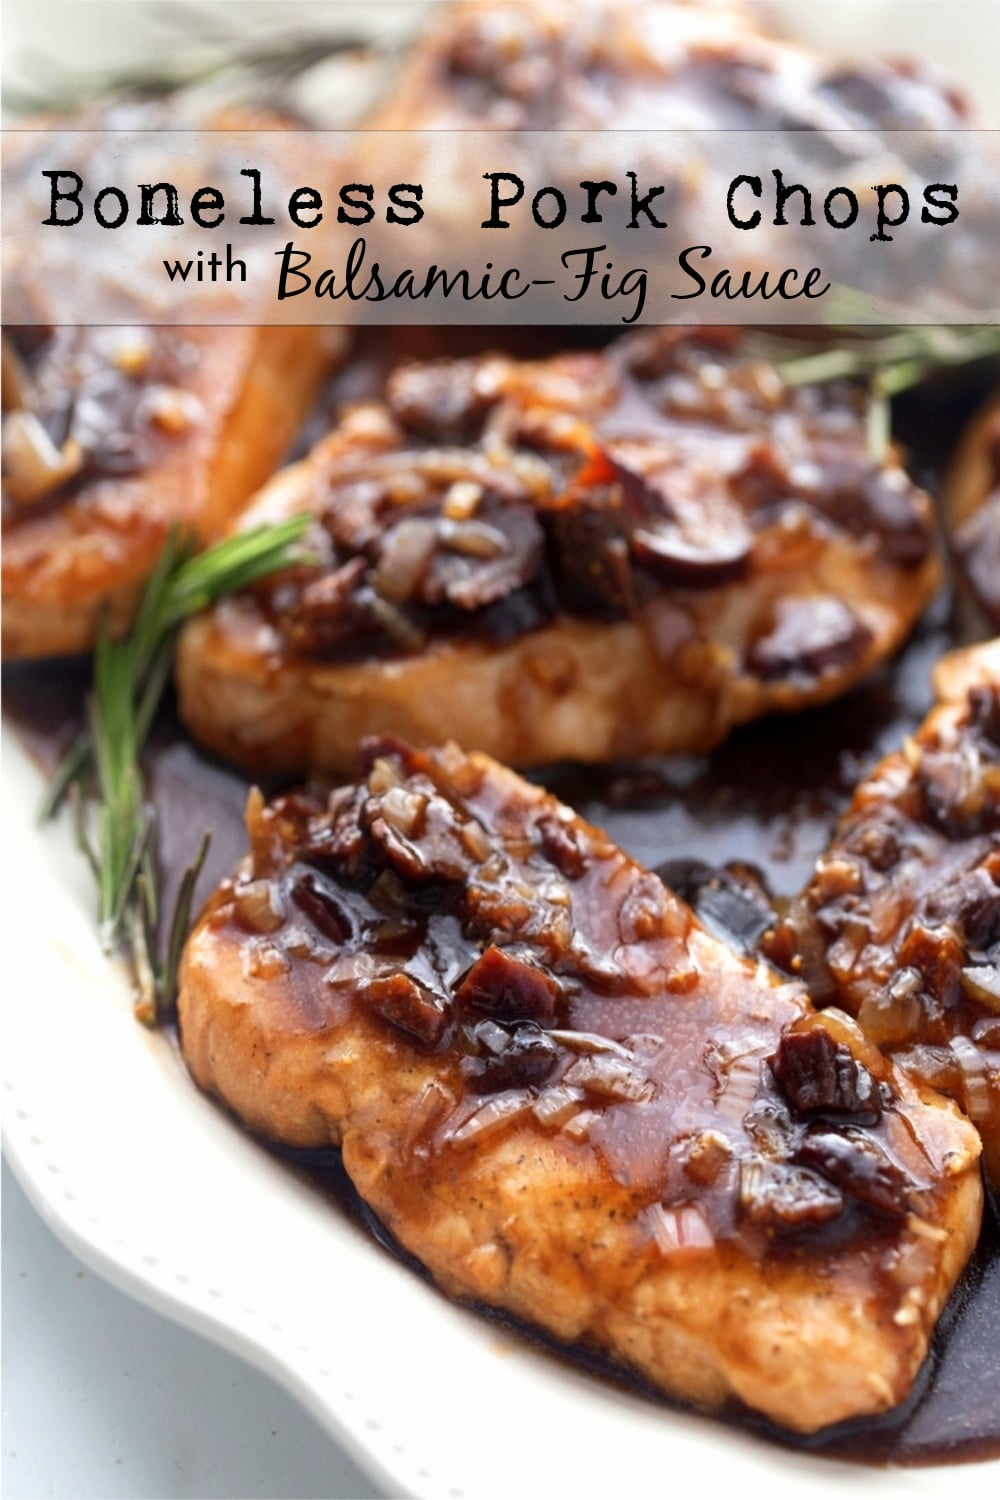 Ordinary pork chops turned extraordinary with a quick and easy balsamic vinegar sauce. This sauce is a secret weapon when it comes to jazzing up a midweek meal. via @cmpollak1